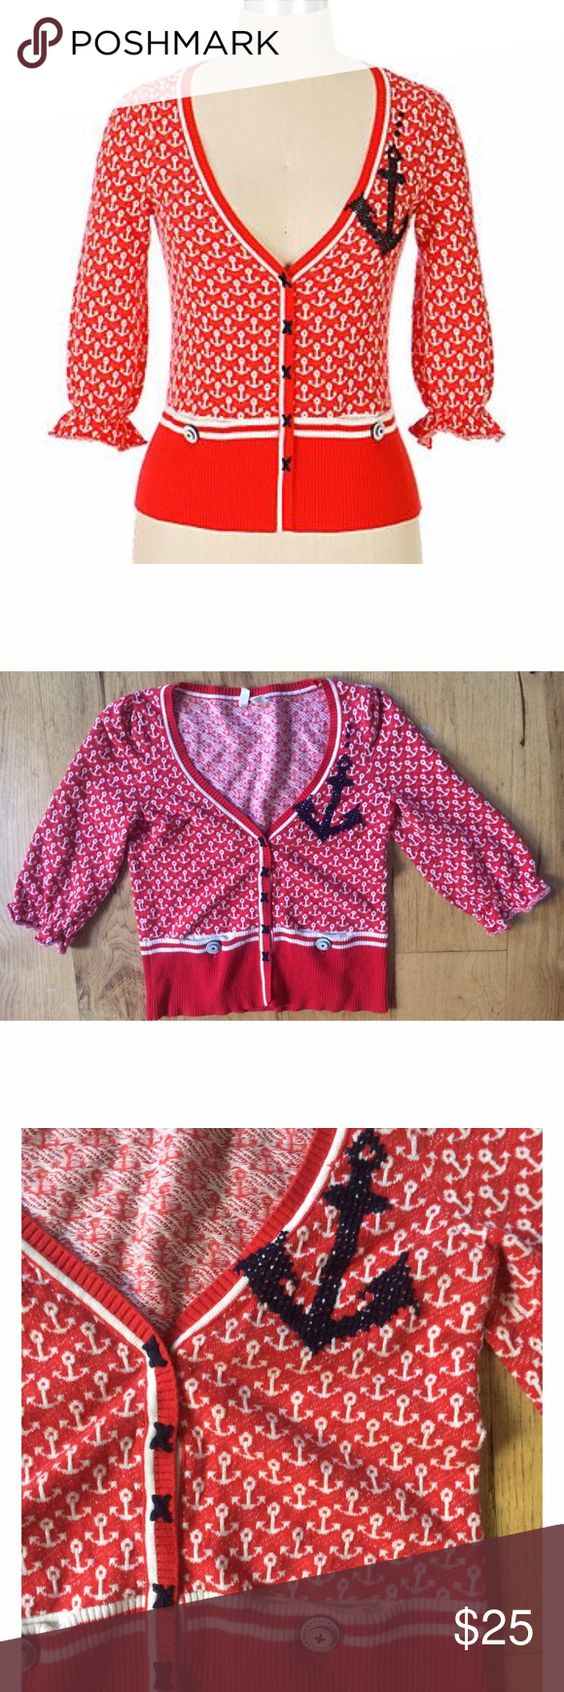 """EUC Anthropologie Moth Sailor Anchors Cardigan In really good pre-loved condition cardigan from Anthropologie Moth in size x-small. Features cute Sailor Anchors Print all over. 100% cotton. Measure about 18"""" length, 15"""" pit to pit, 14"""" sleeves. No snags or major flaws. Snap buttons closured. Run smalls. Best fits for a smaller petite person. ❌No trades or modeling. Open to reasonable offers. Thank you‼️ Anthropologie Sweaters Cardigans"""